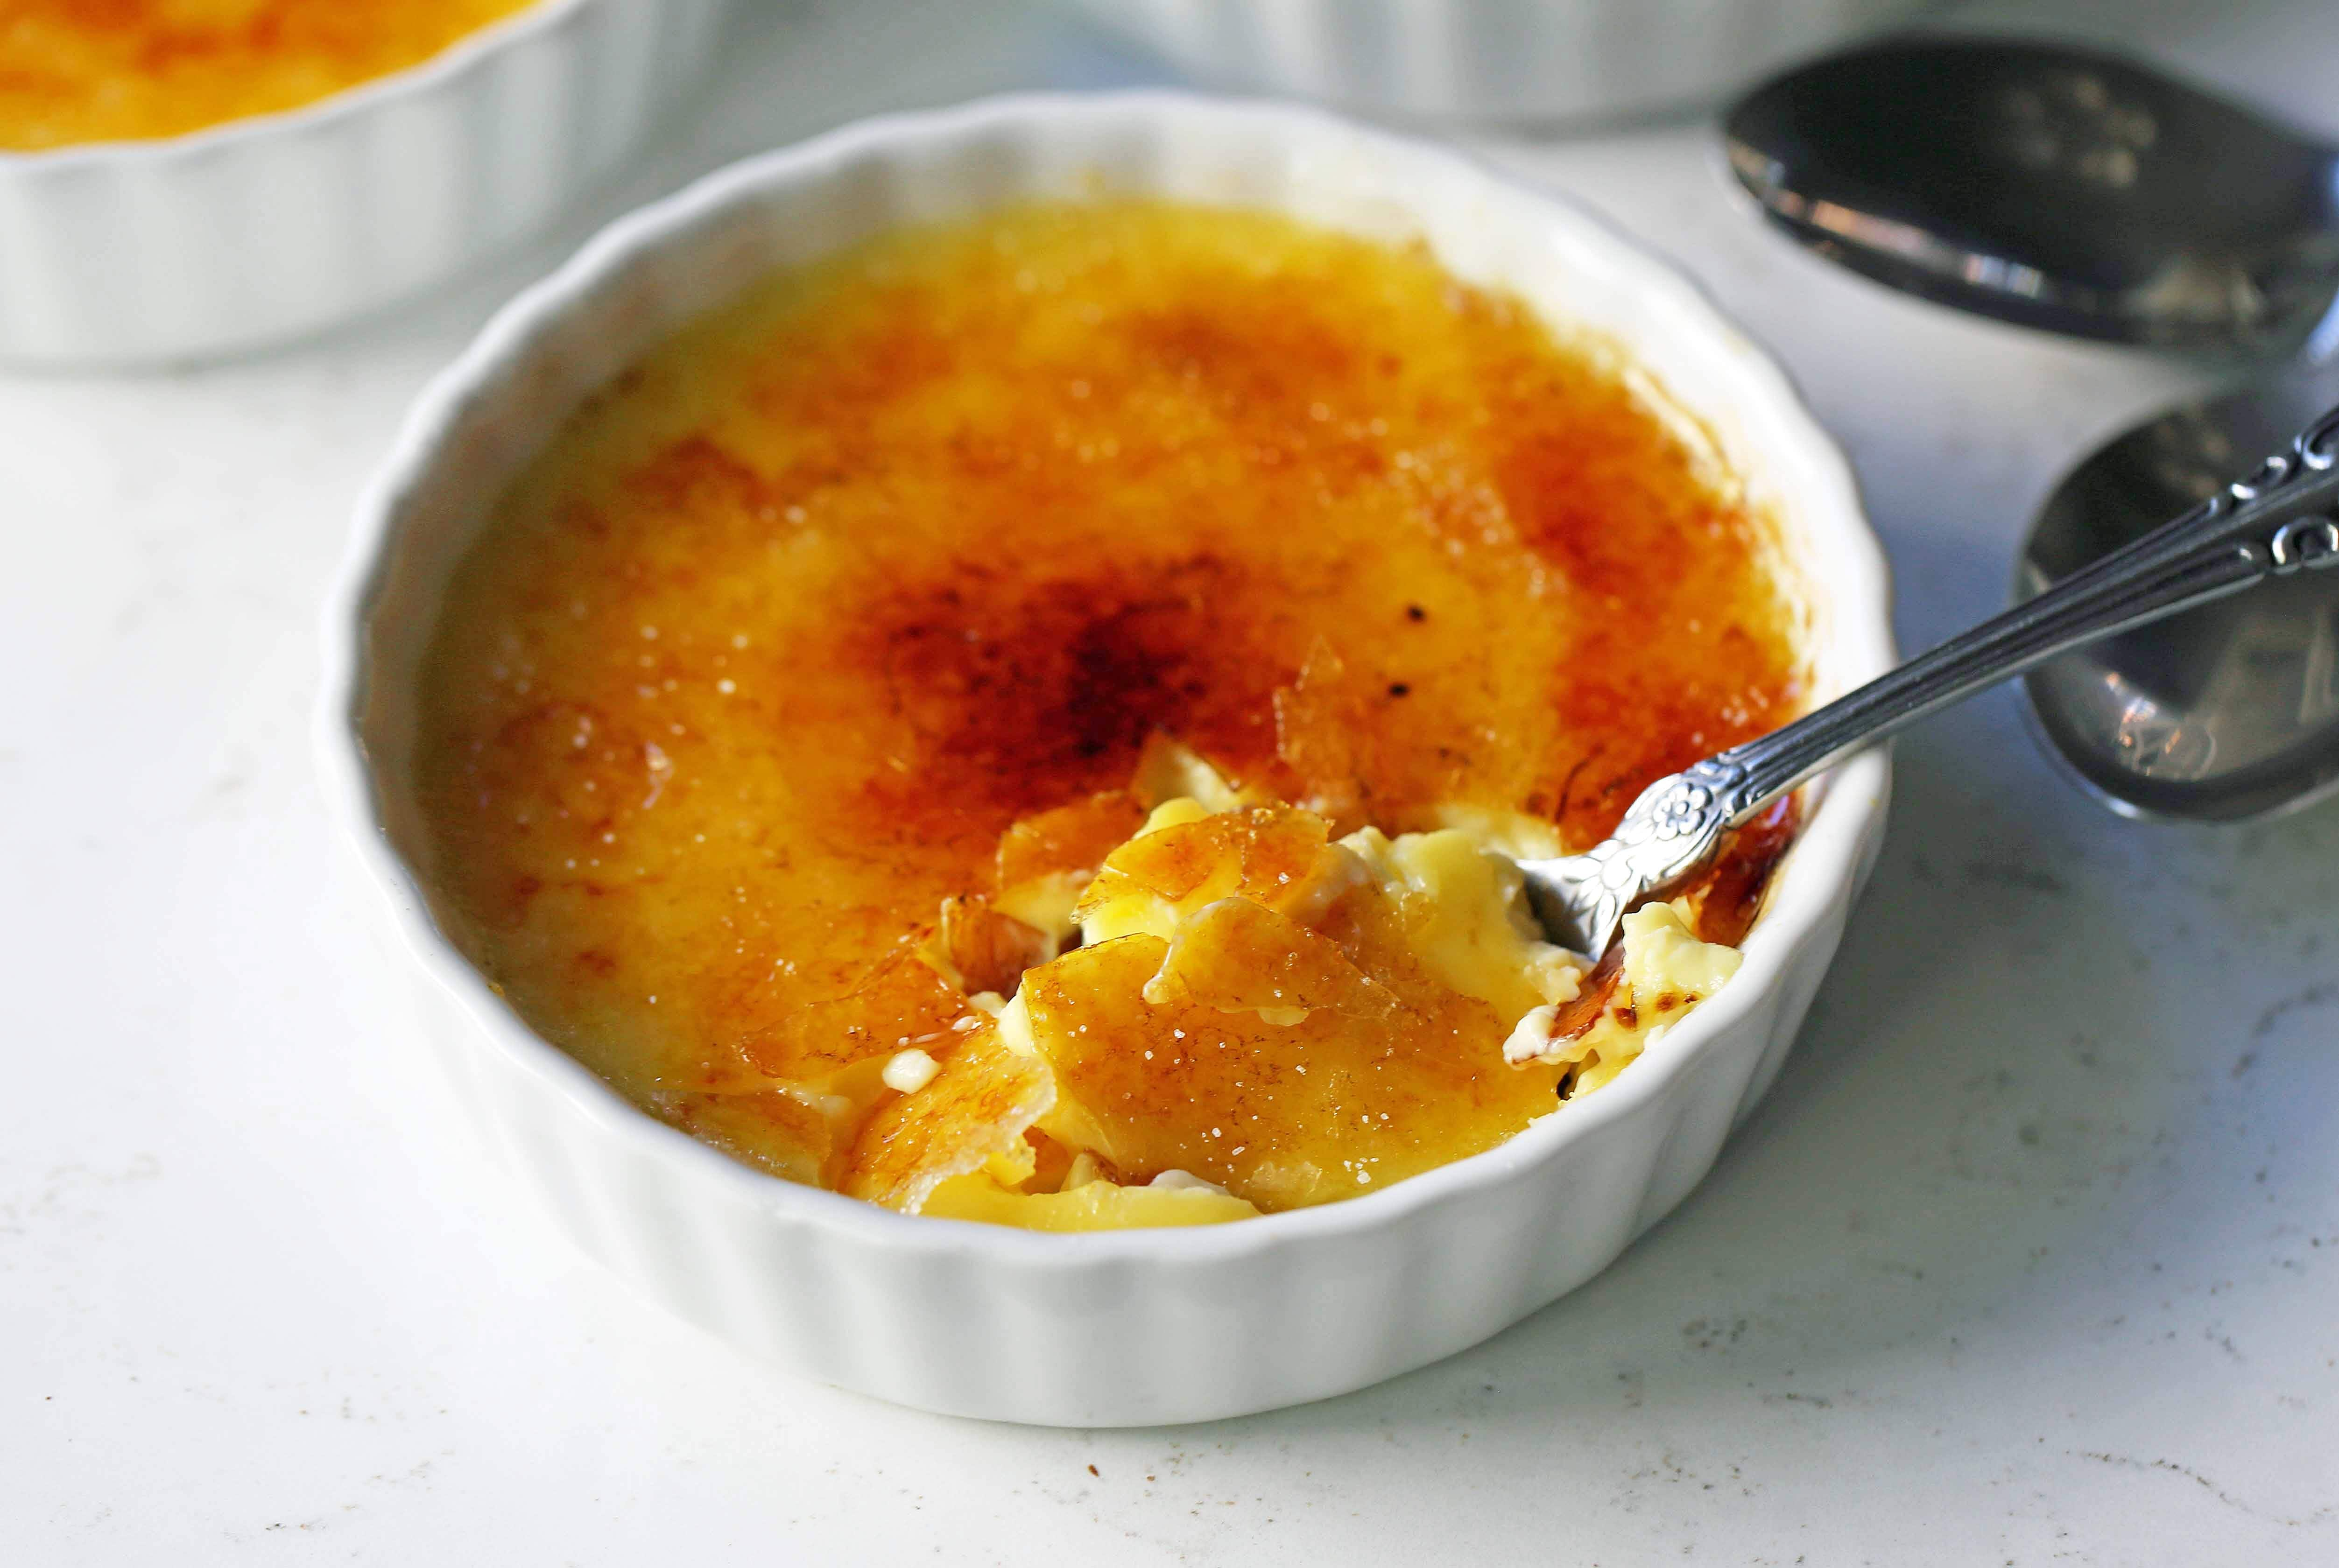 Creme Brulee Recipe. Howto make the best creme brulee. A creamy, silky vanilla custard topped with crisp sugar crust is one of the most popular desserts at restaurants for good reason. www.modernhoney.com #cremebrulee #vanillacremebrulee #dessert #valentinesday #valentinesdaydessert